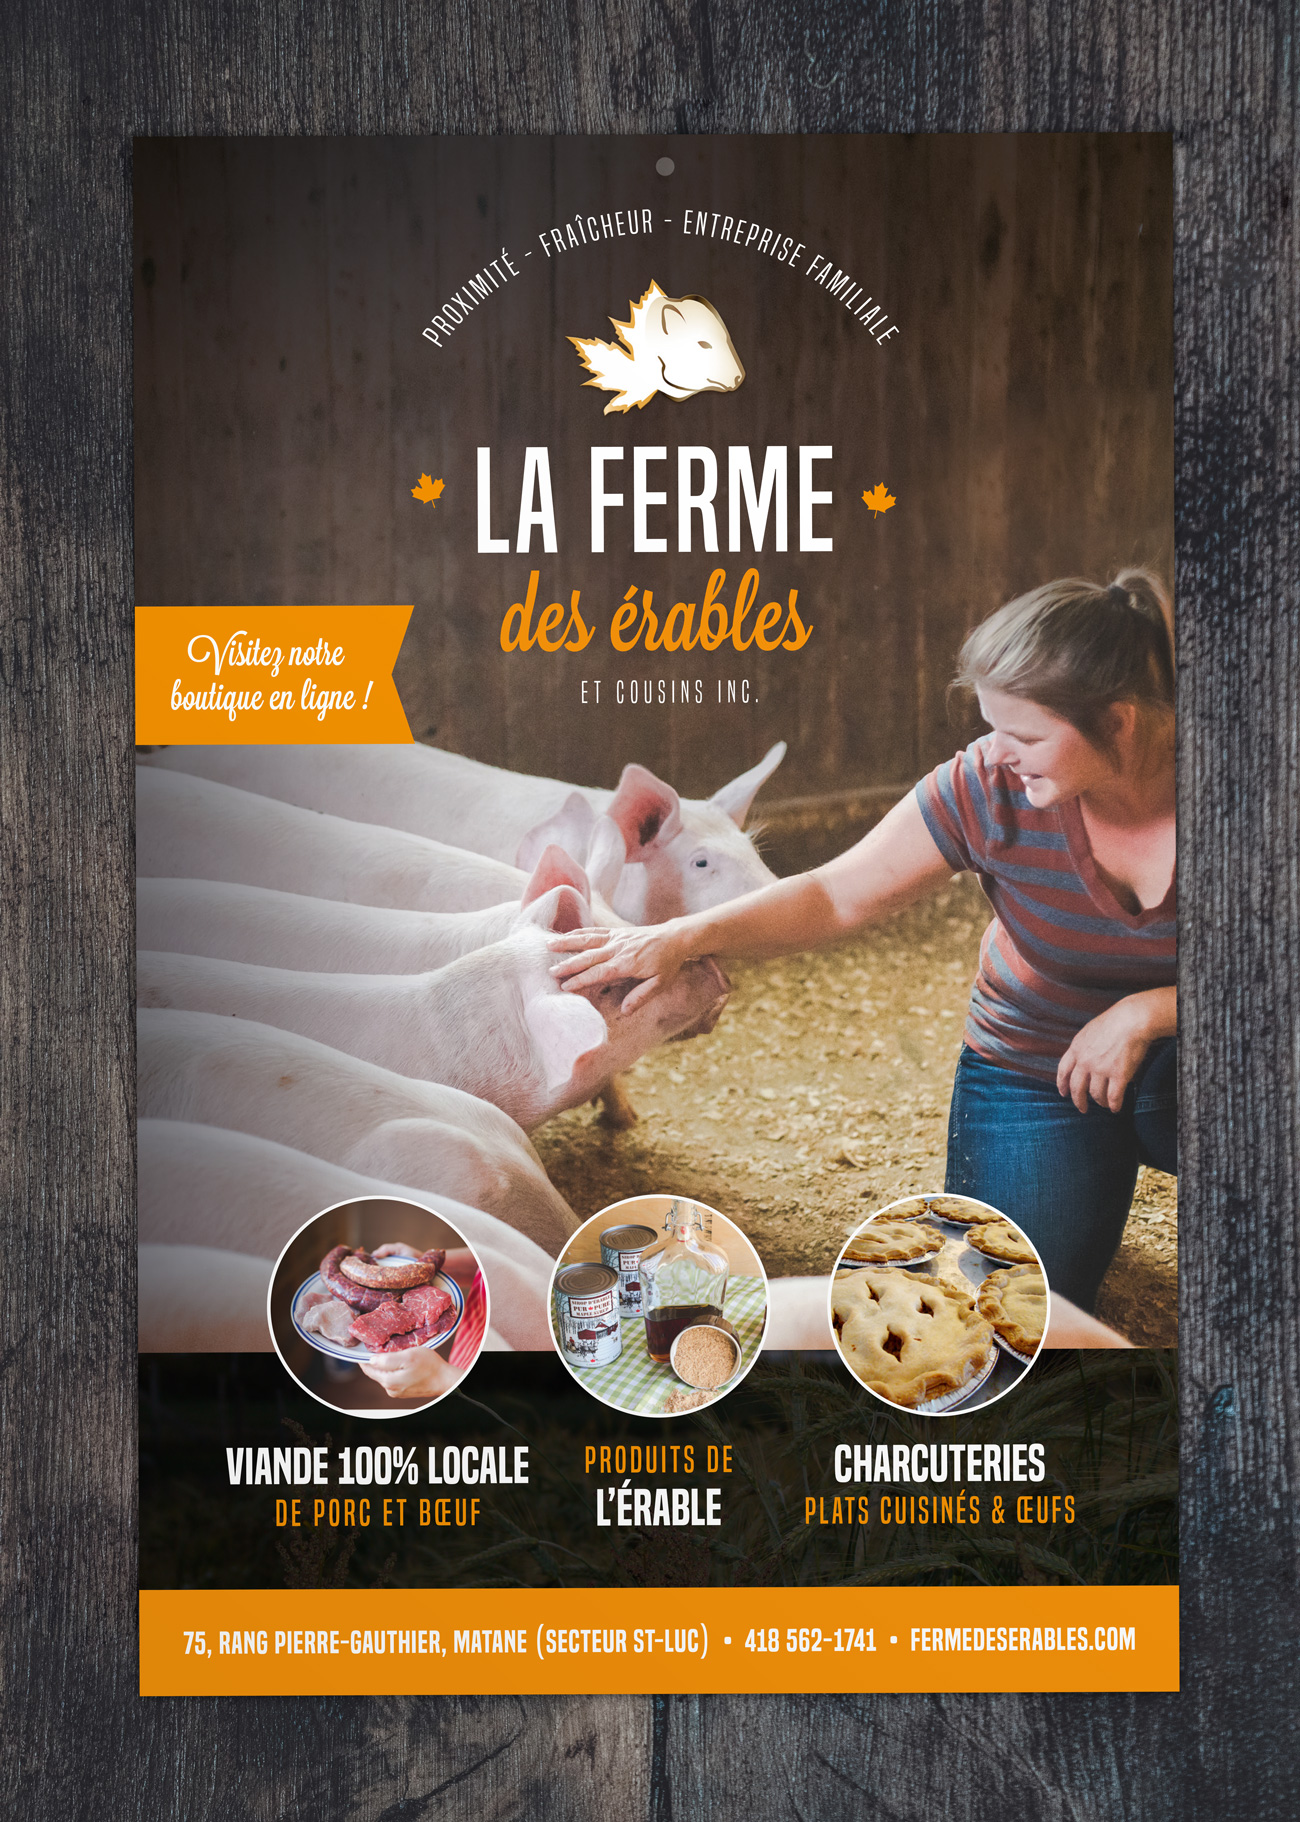 Conception d'une affiche promotionnelle